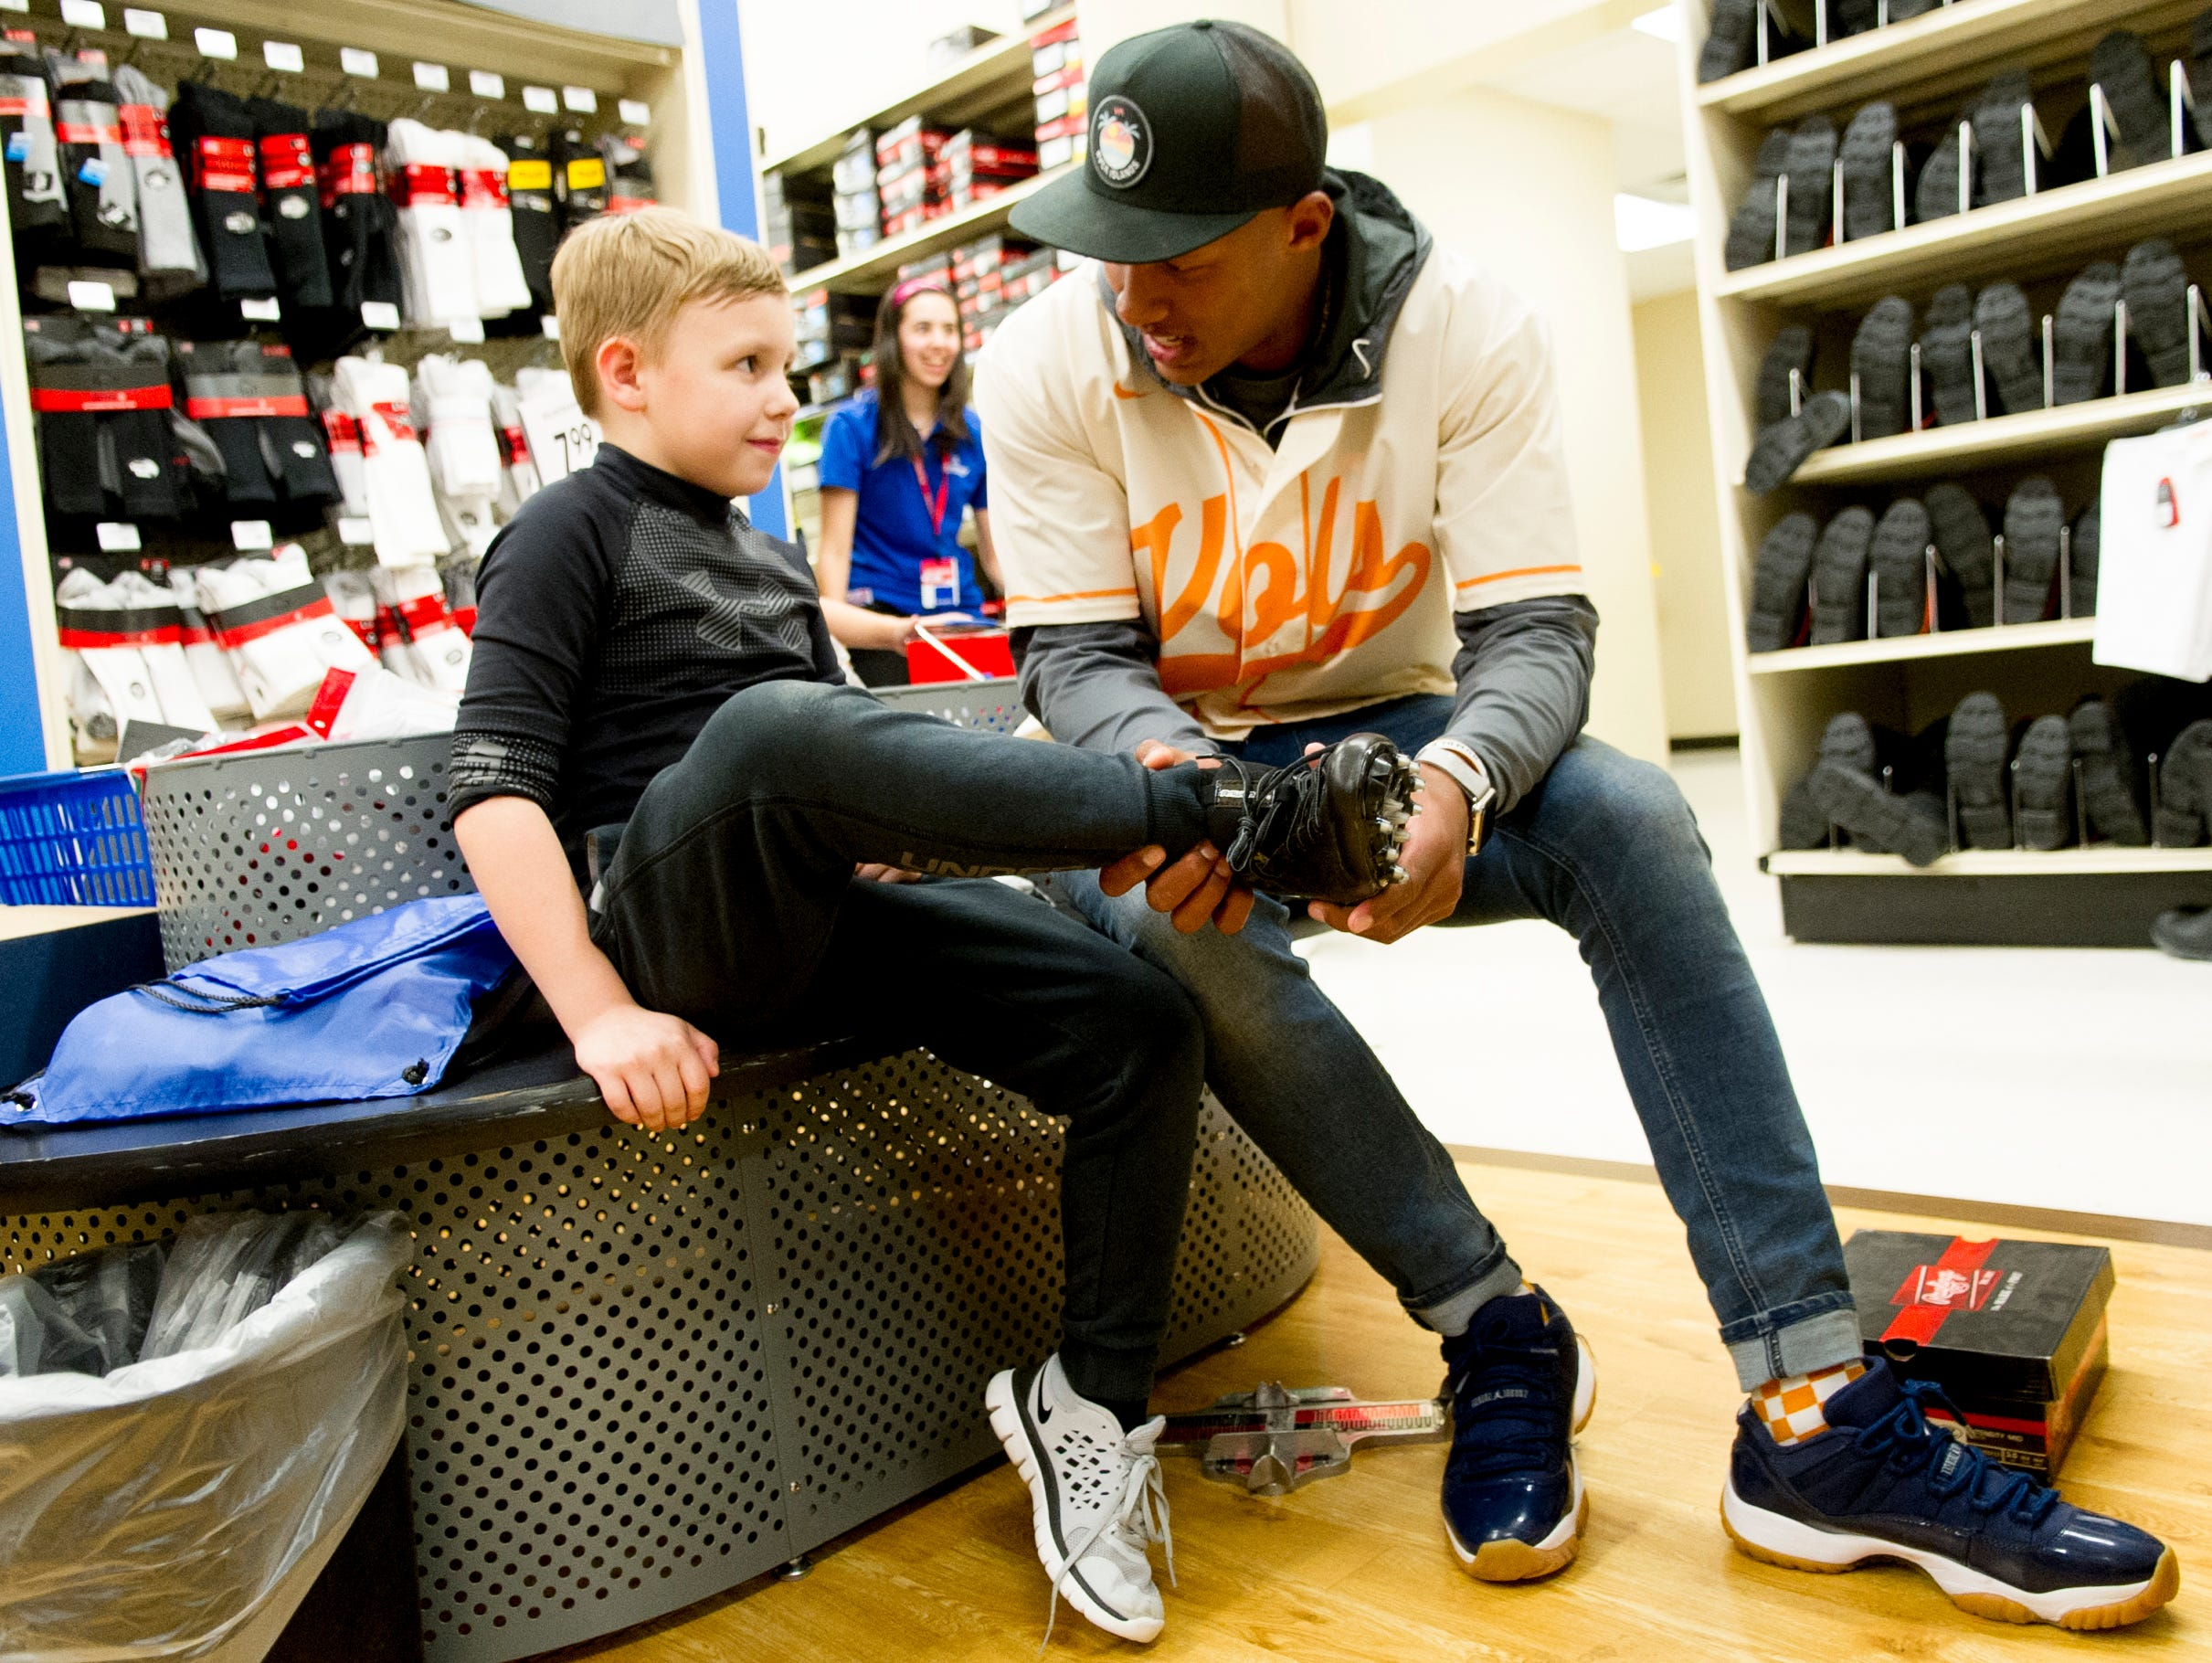 Former UT QB Joshua Dobbs helps Matthew Scott, 8, of Sevierville, with finding football cleats during a football sporting goods shopping spree at Academy Sports + Outdoors in Knoxville, Tennessee on Friday, March 31, 2017. Dobbs held a shopping spree for 11 area kids who are participating in his football camp.